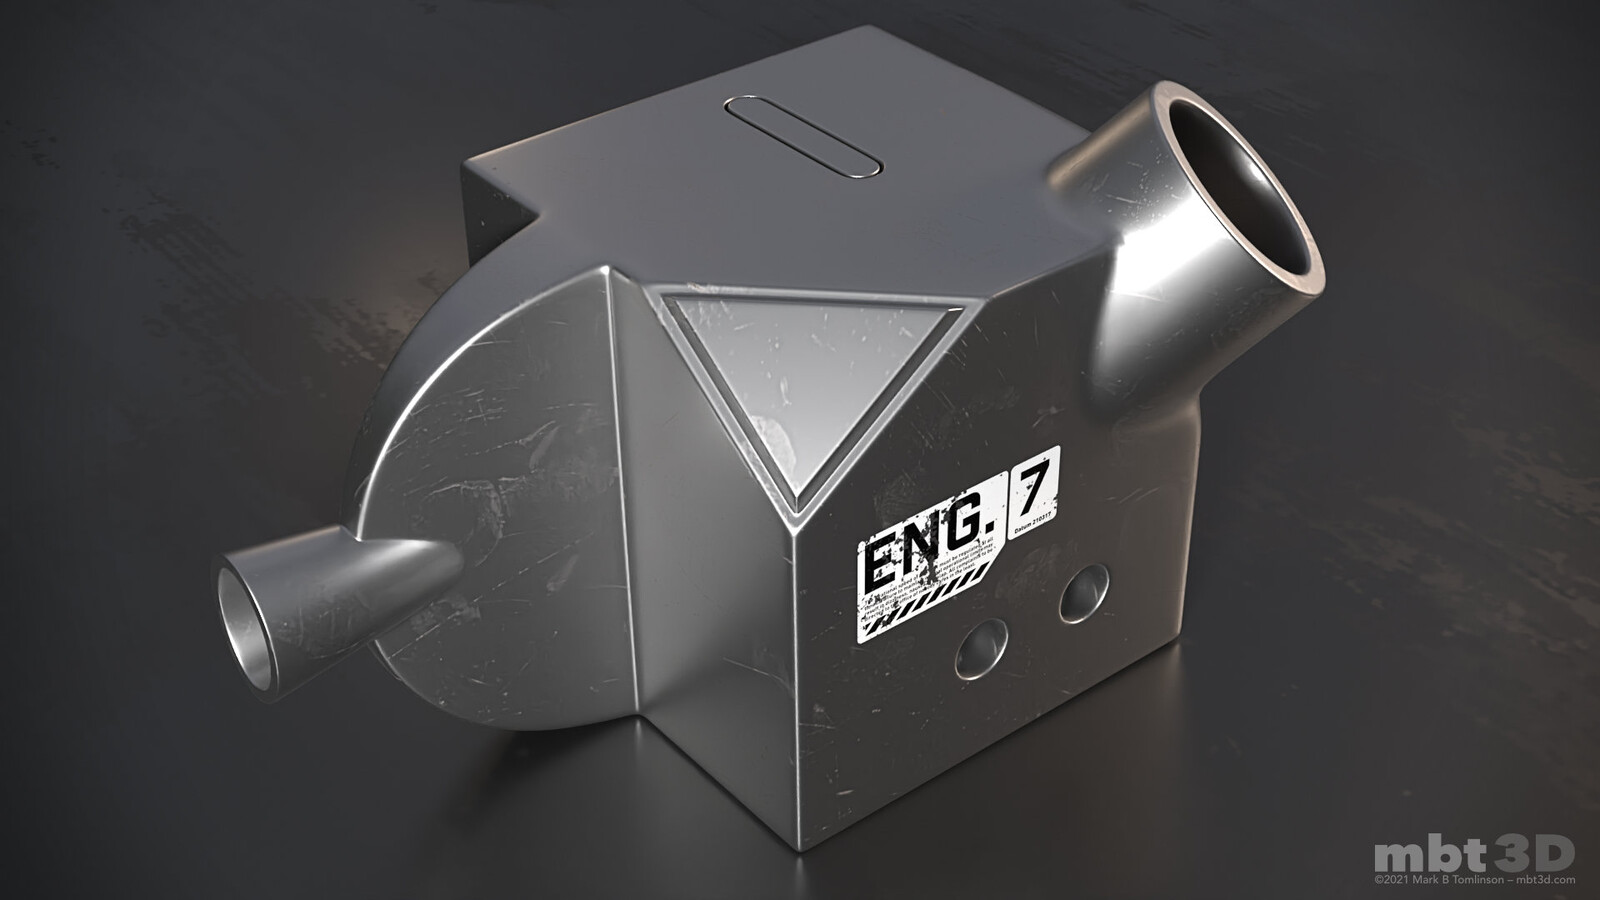 Cube Pipe: